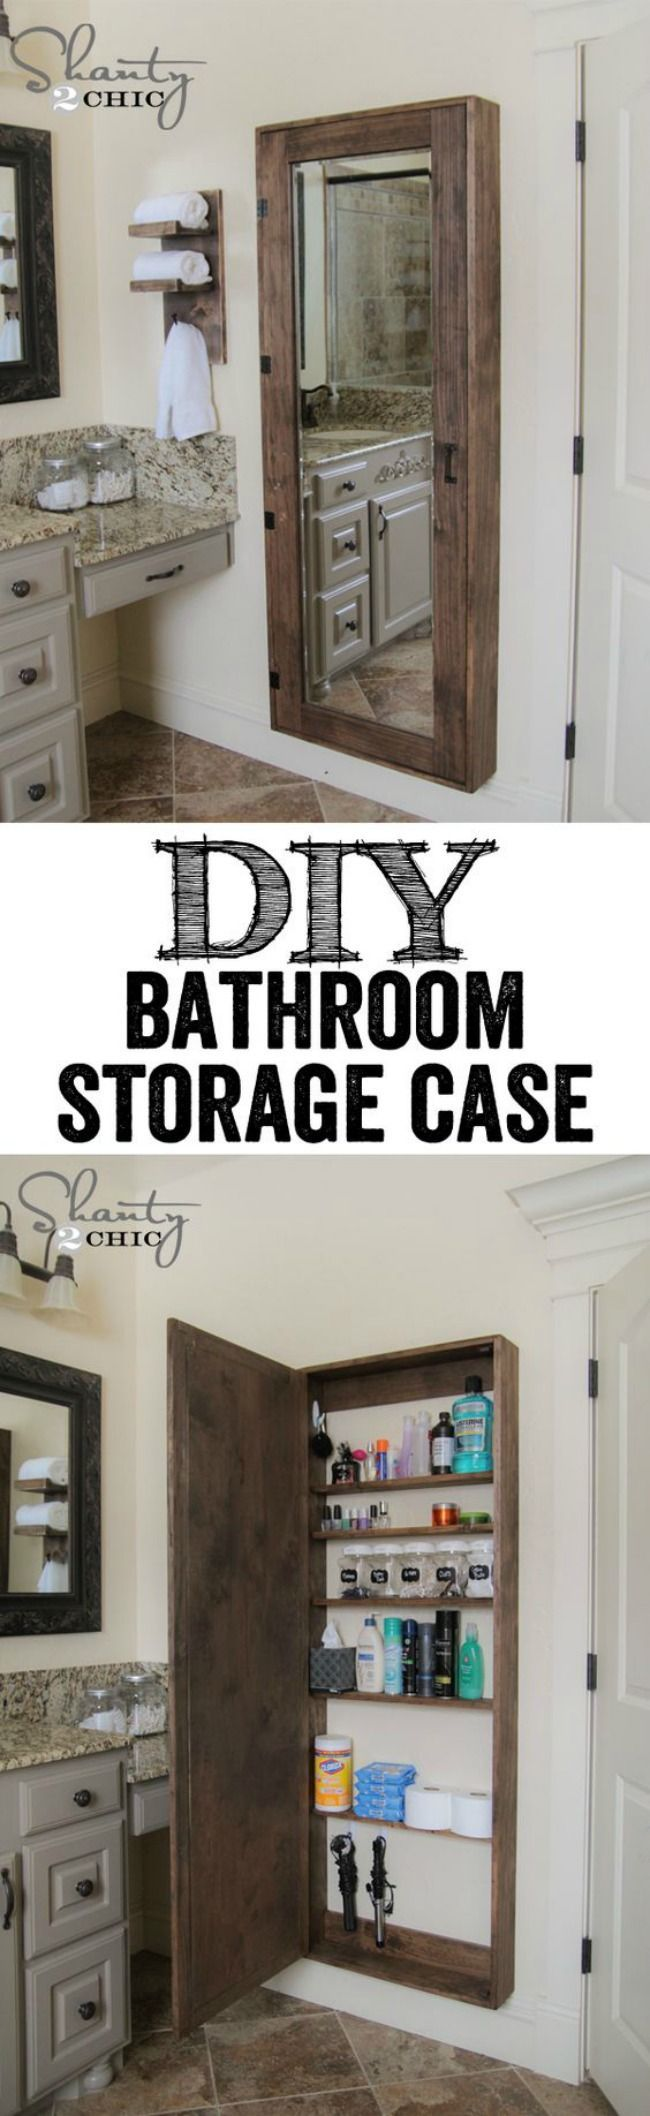 Organizing your bathroom and maximizing the space can seem like a daunting task depending on the state that it's in. But, by utilizing a few easy tips, you can have your bathroom in tip top shape in no time.